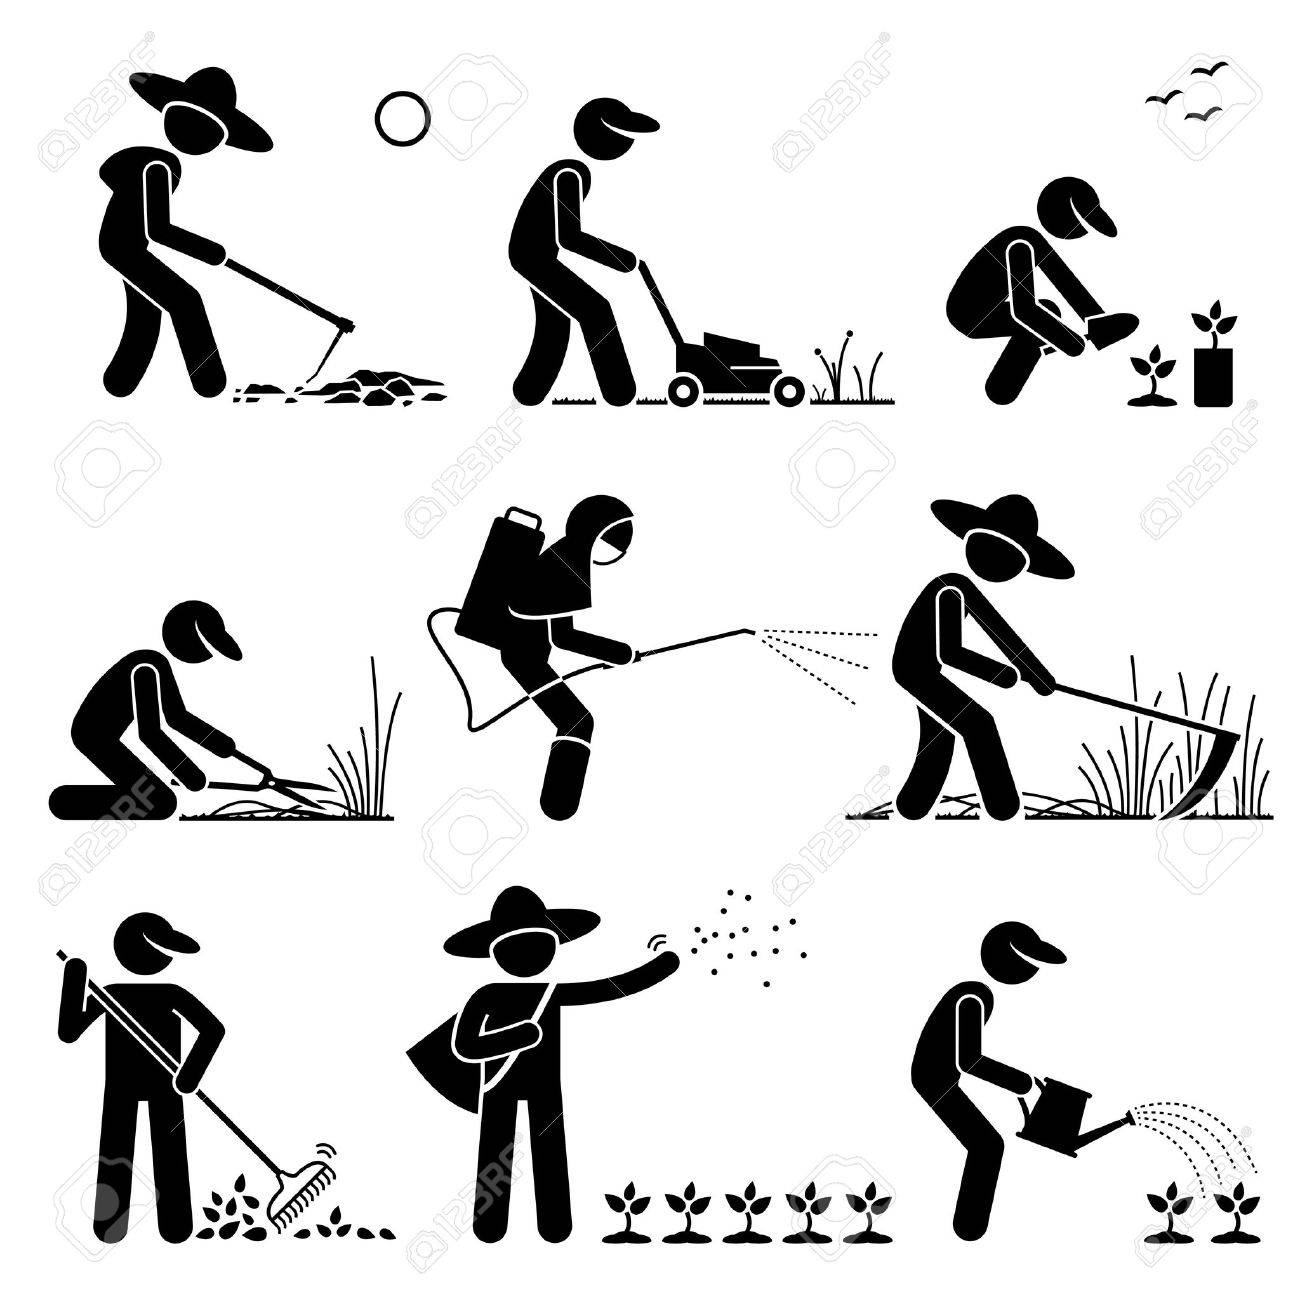 Gardener and Farmer using Gardening Tools and Equipment for Work - 53802606